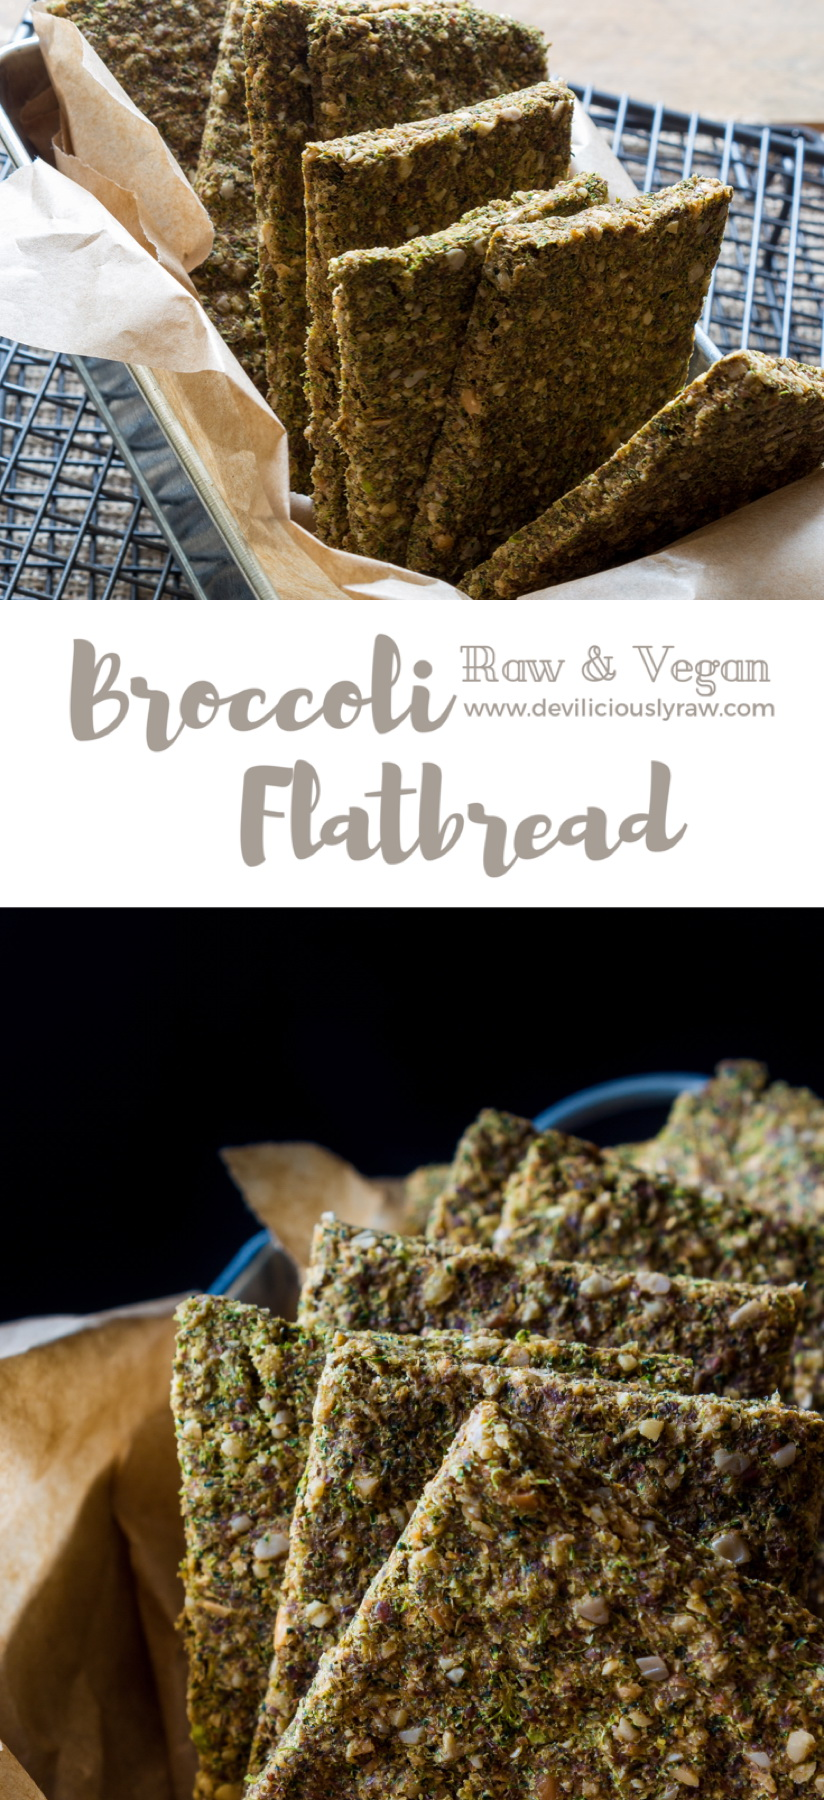 Broccoli Flatbread